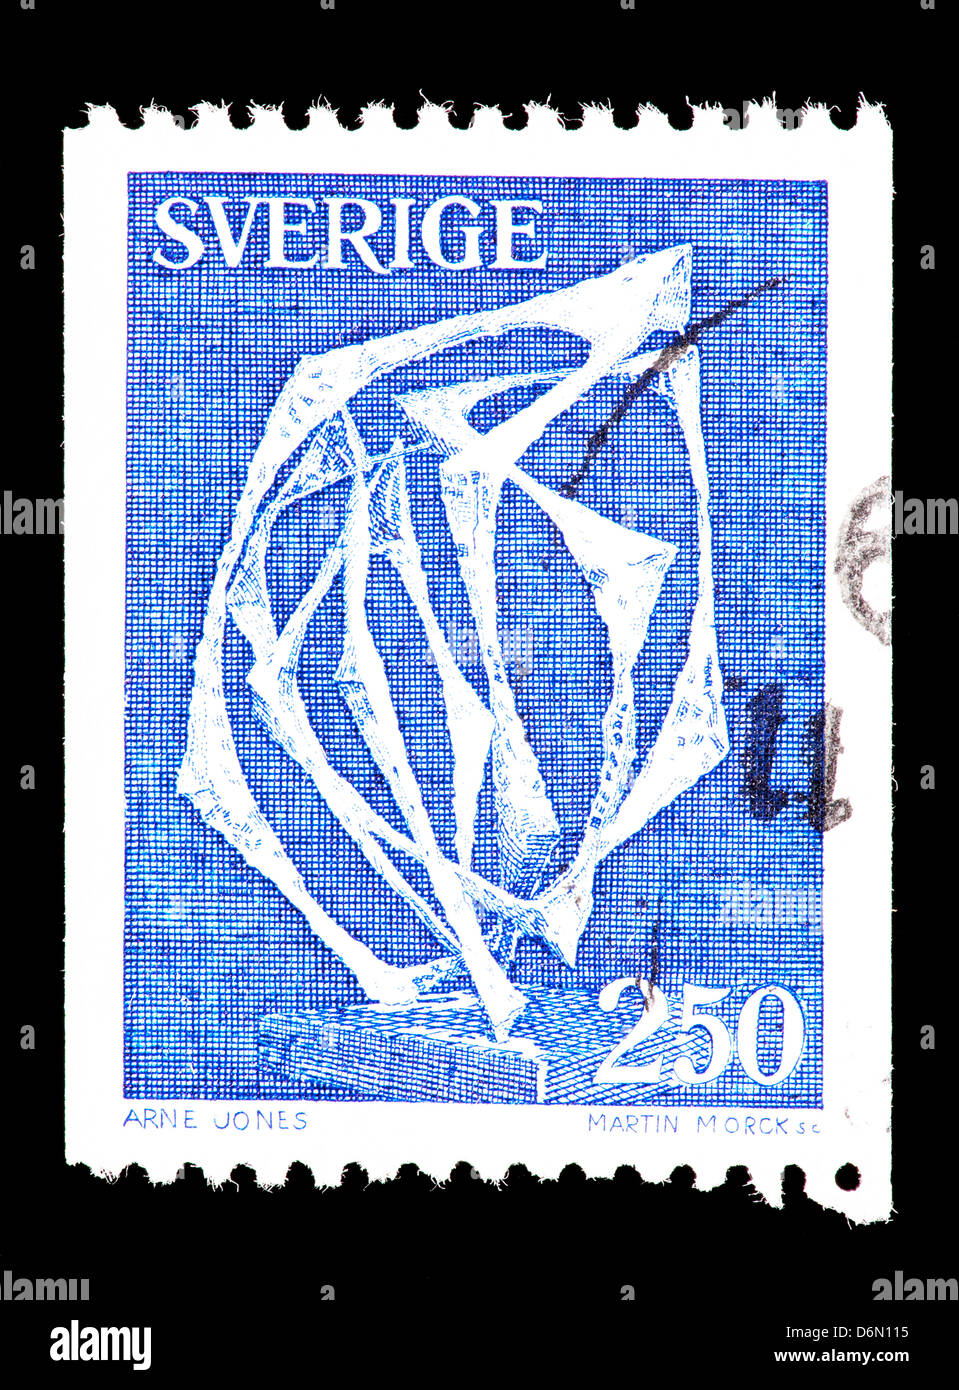 Postage stamp from Sweden depicting the Arne Jones sculpture 'Space without affiliation'. - Stock Image